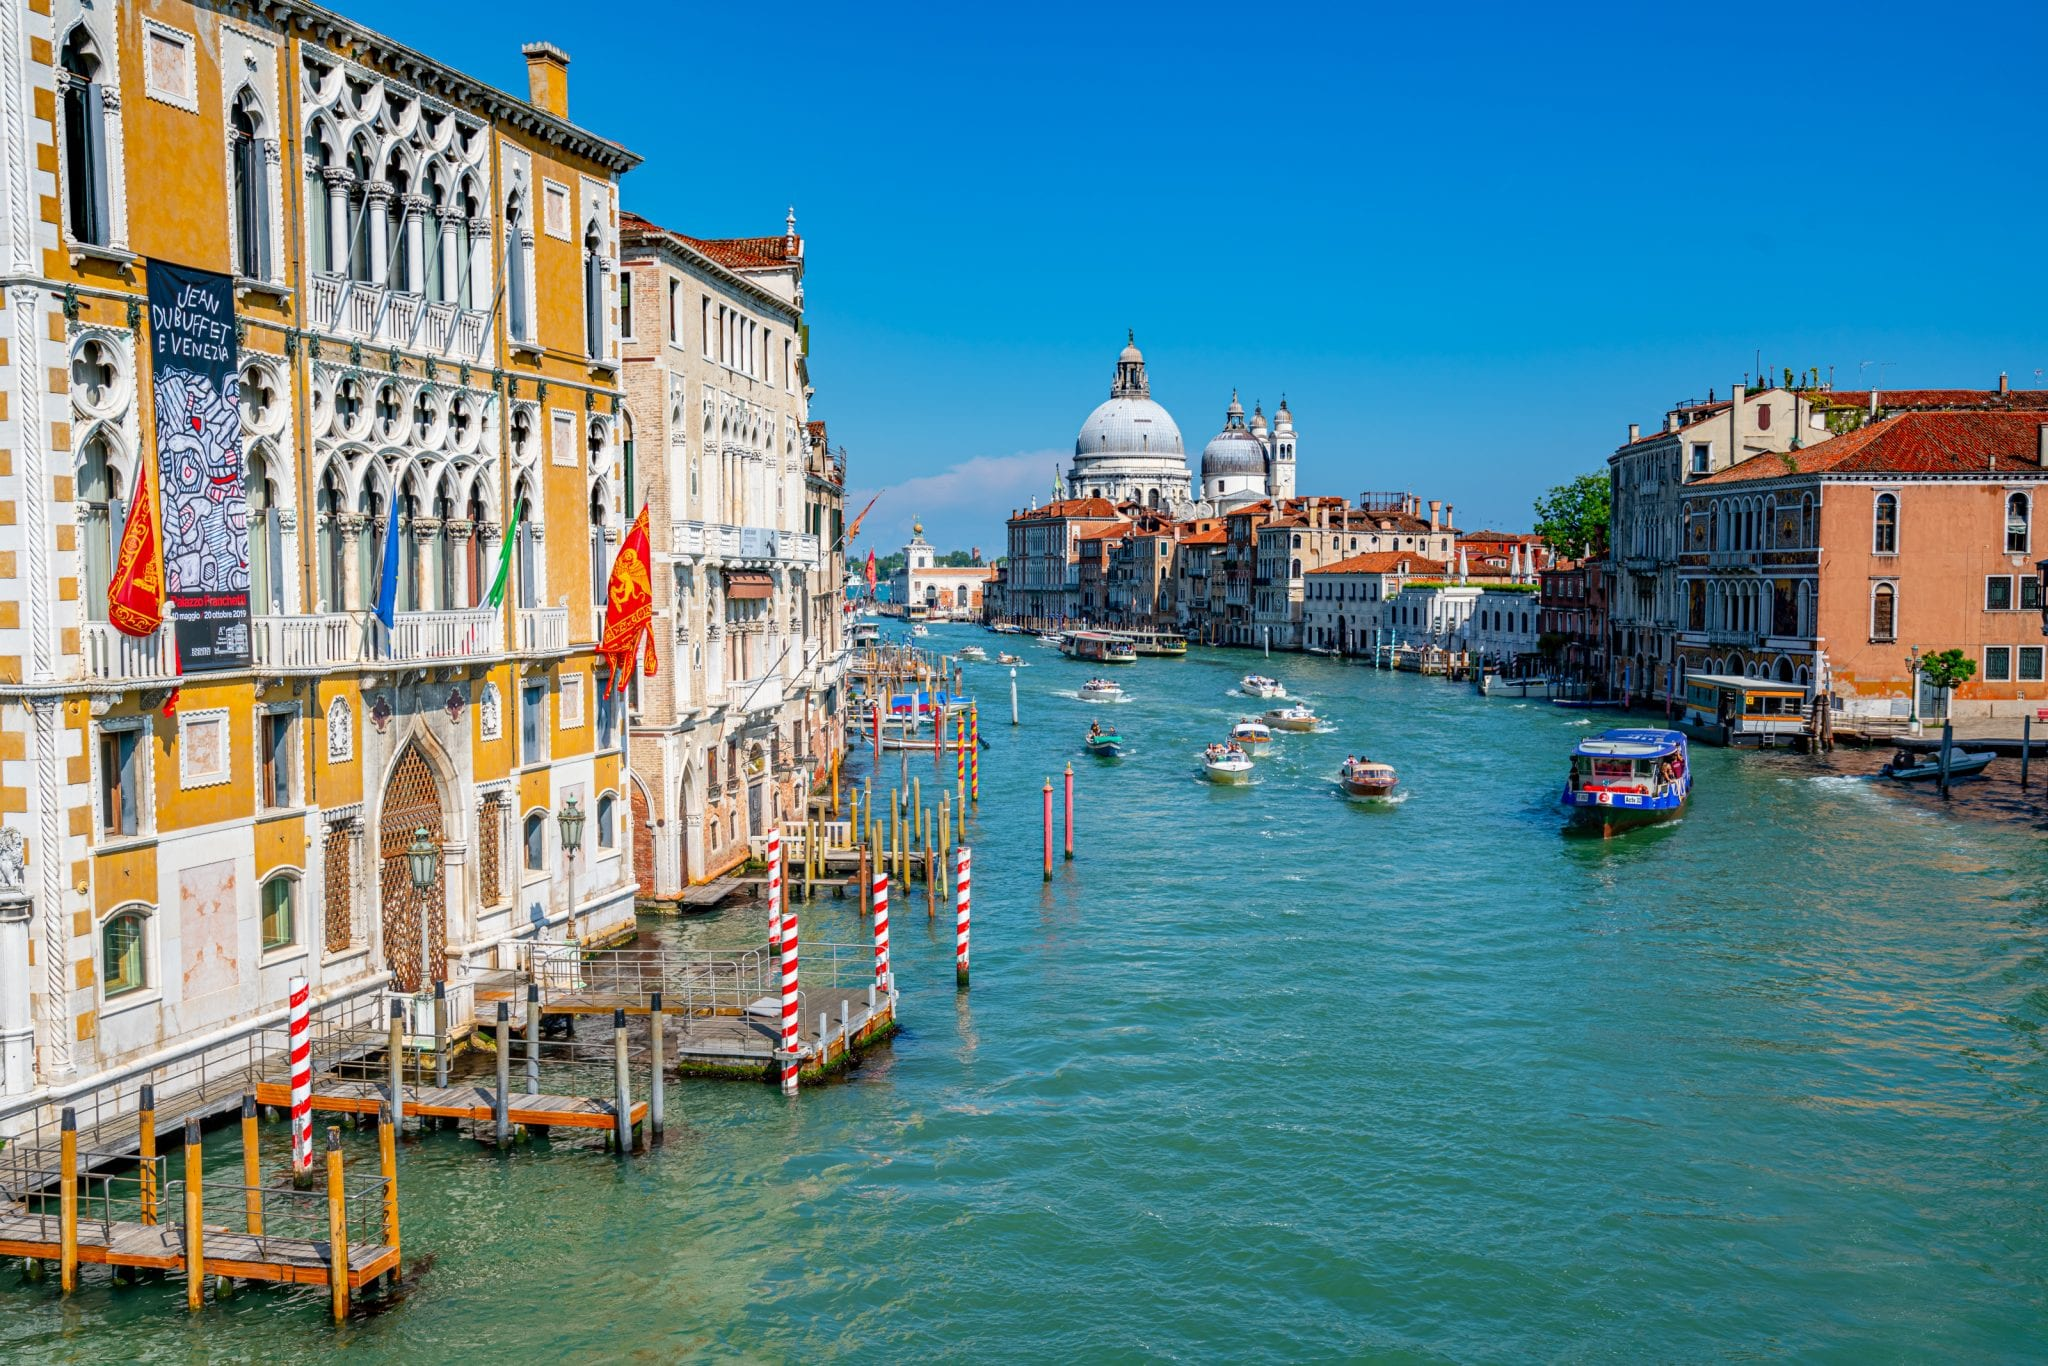 25 Fun + Interesting Facts About Venice, Italy - Our ...